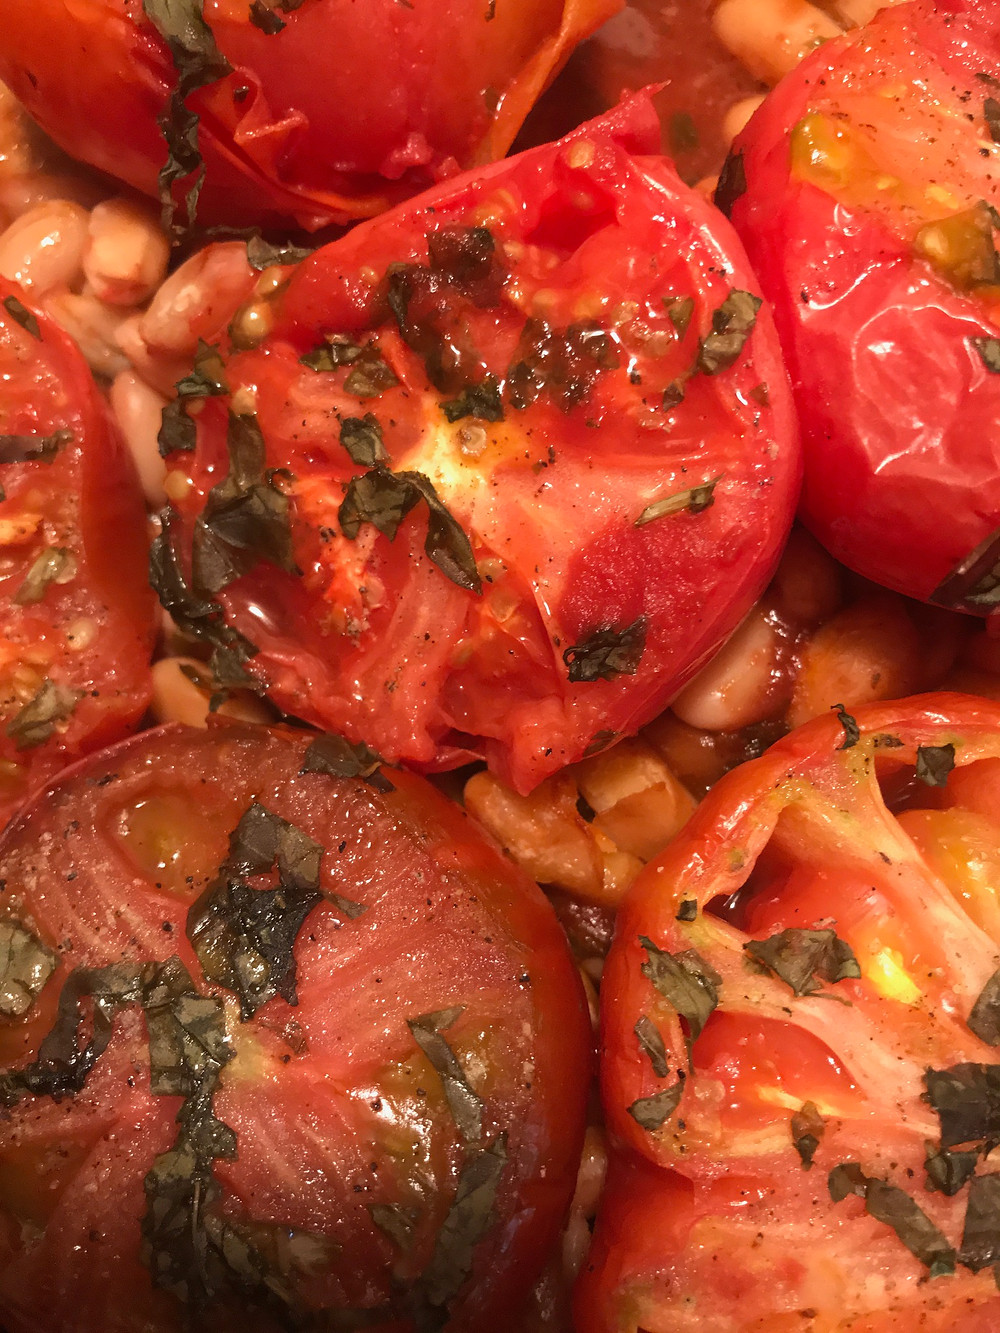 tomatoes give me life!